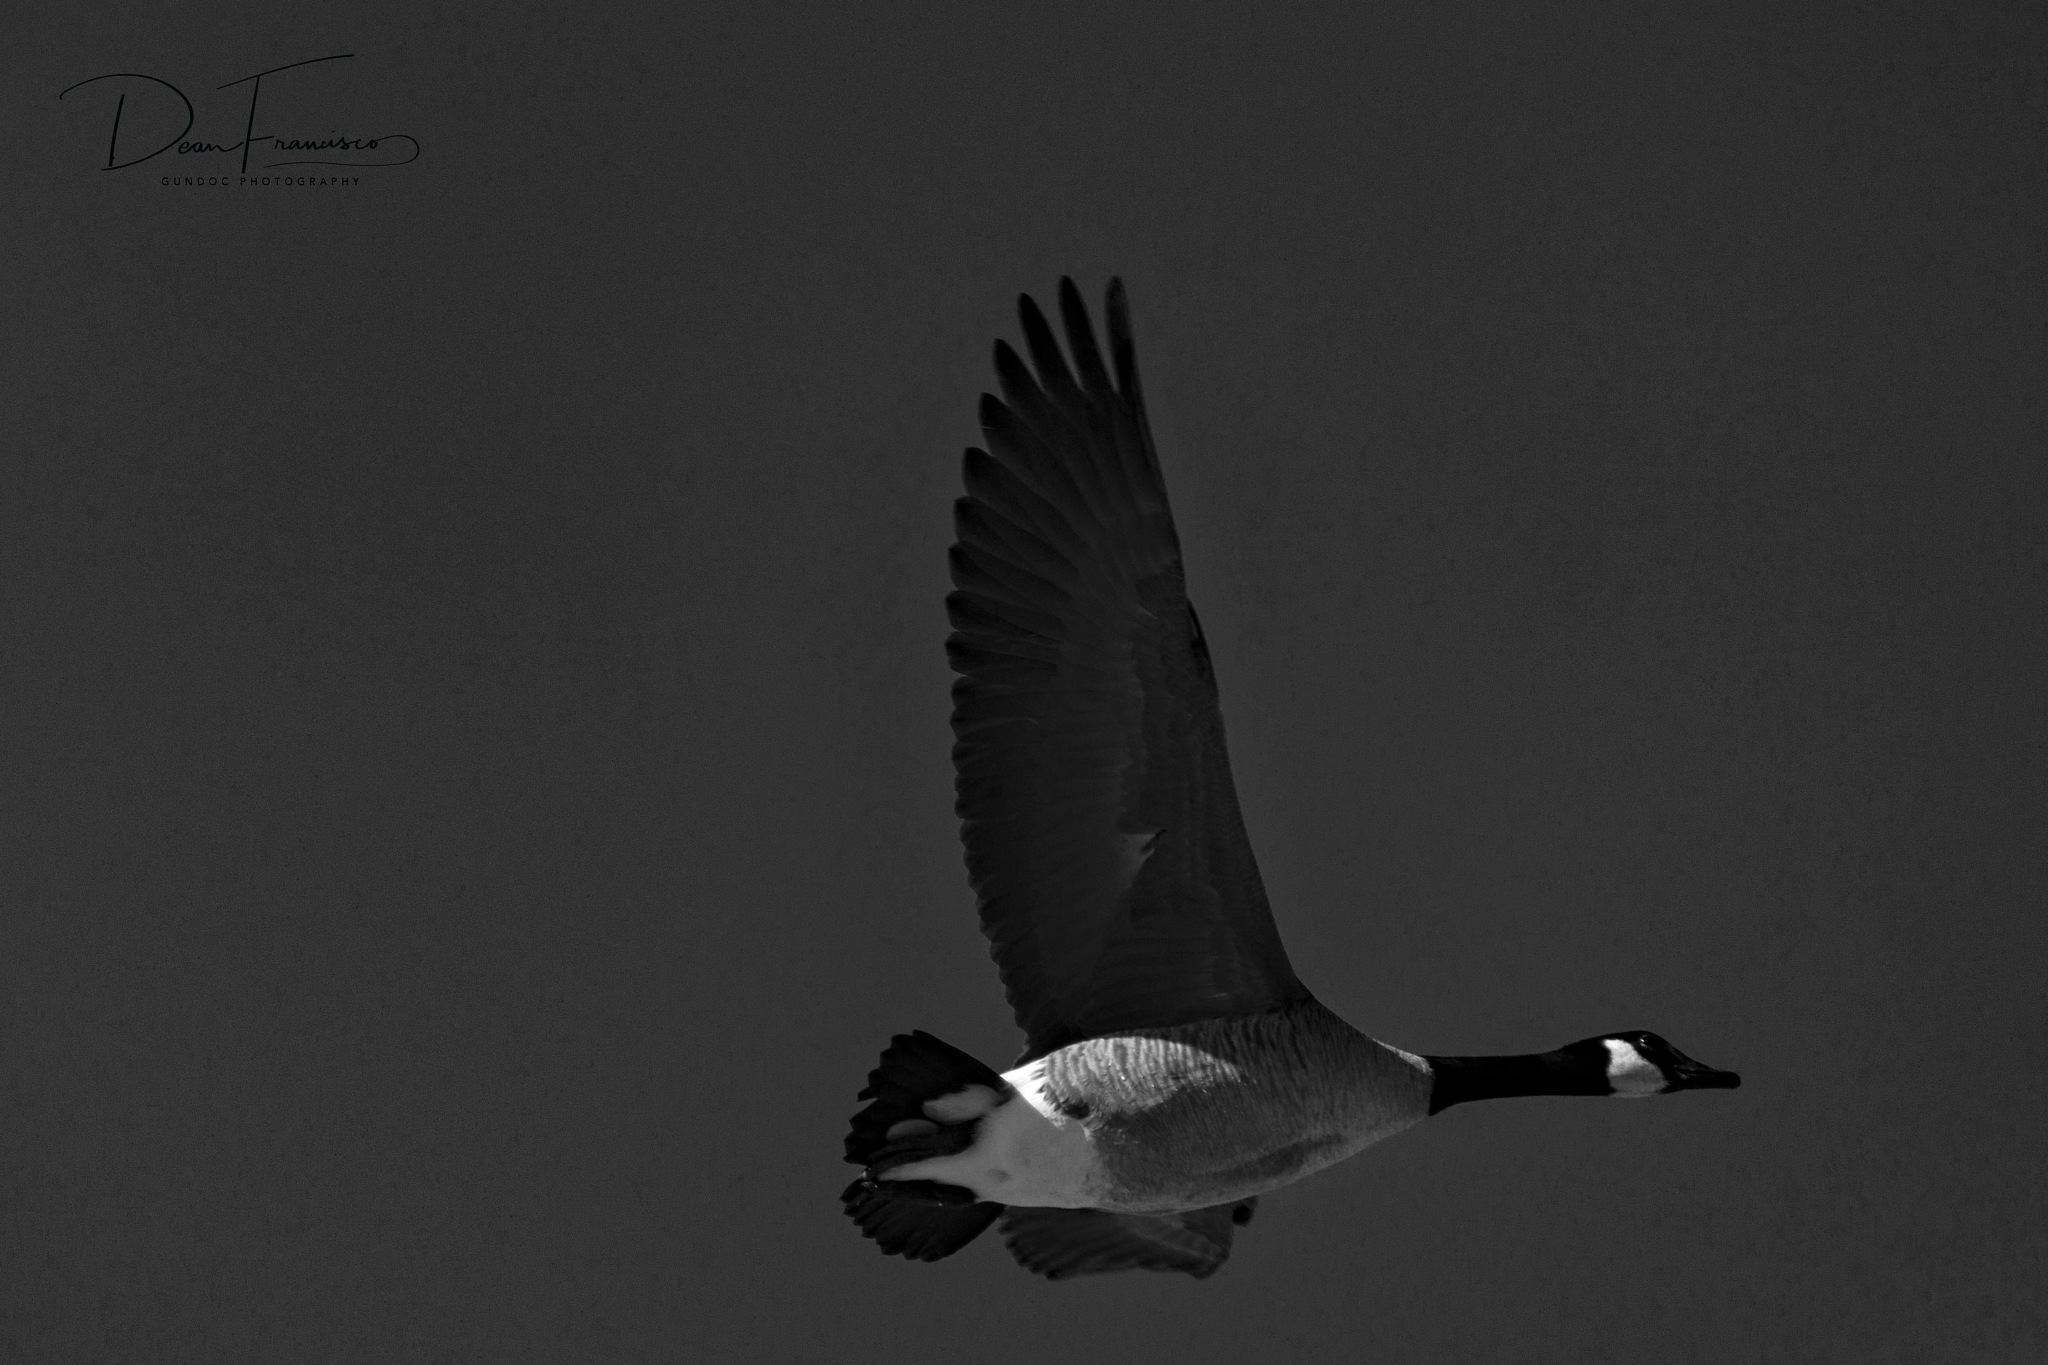 The Goose by Dean Francisco